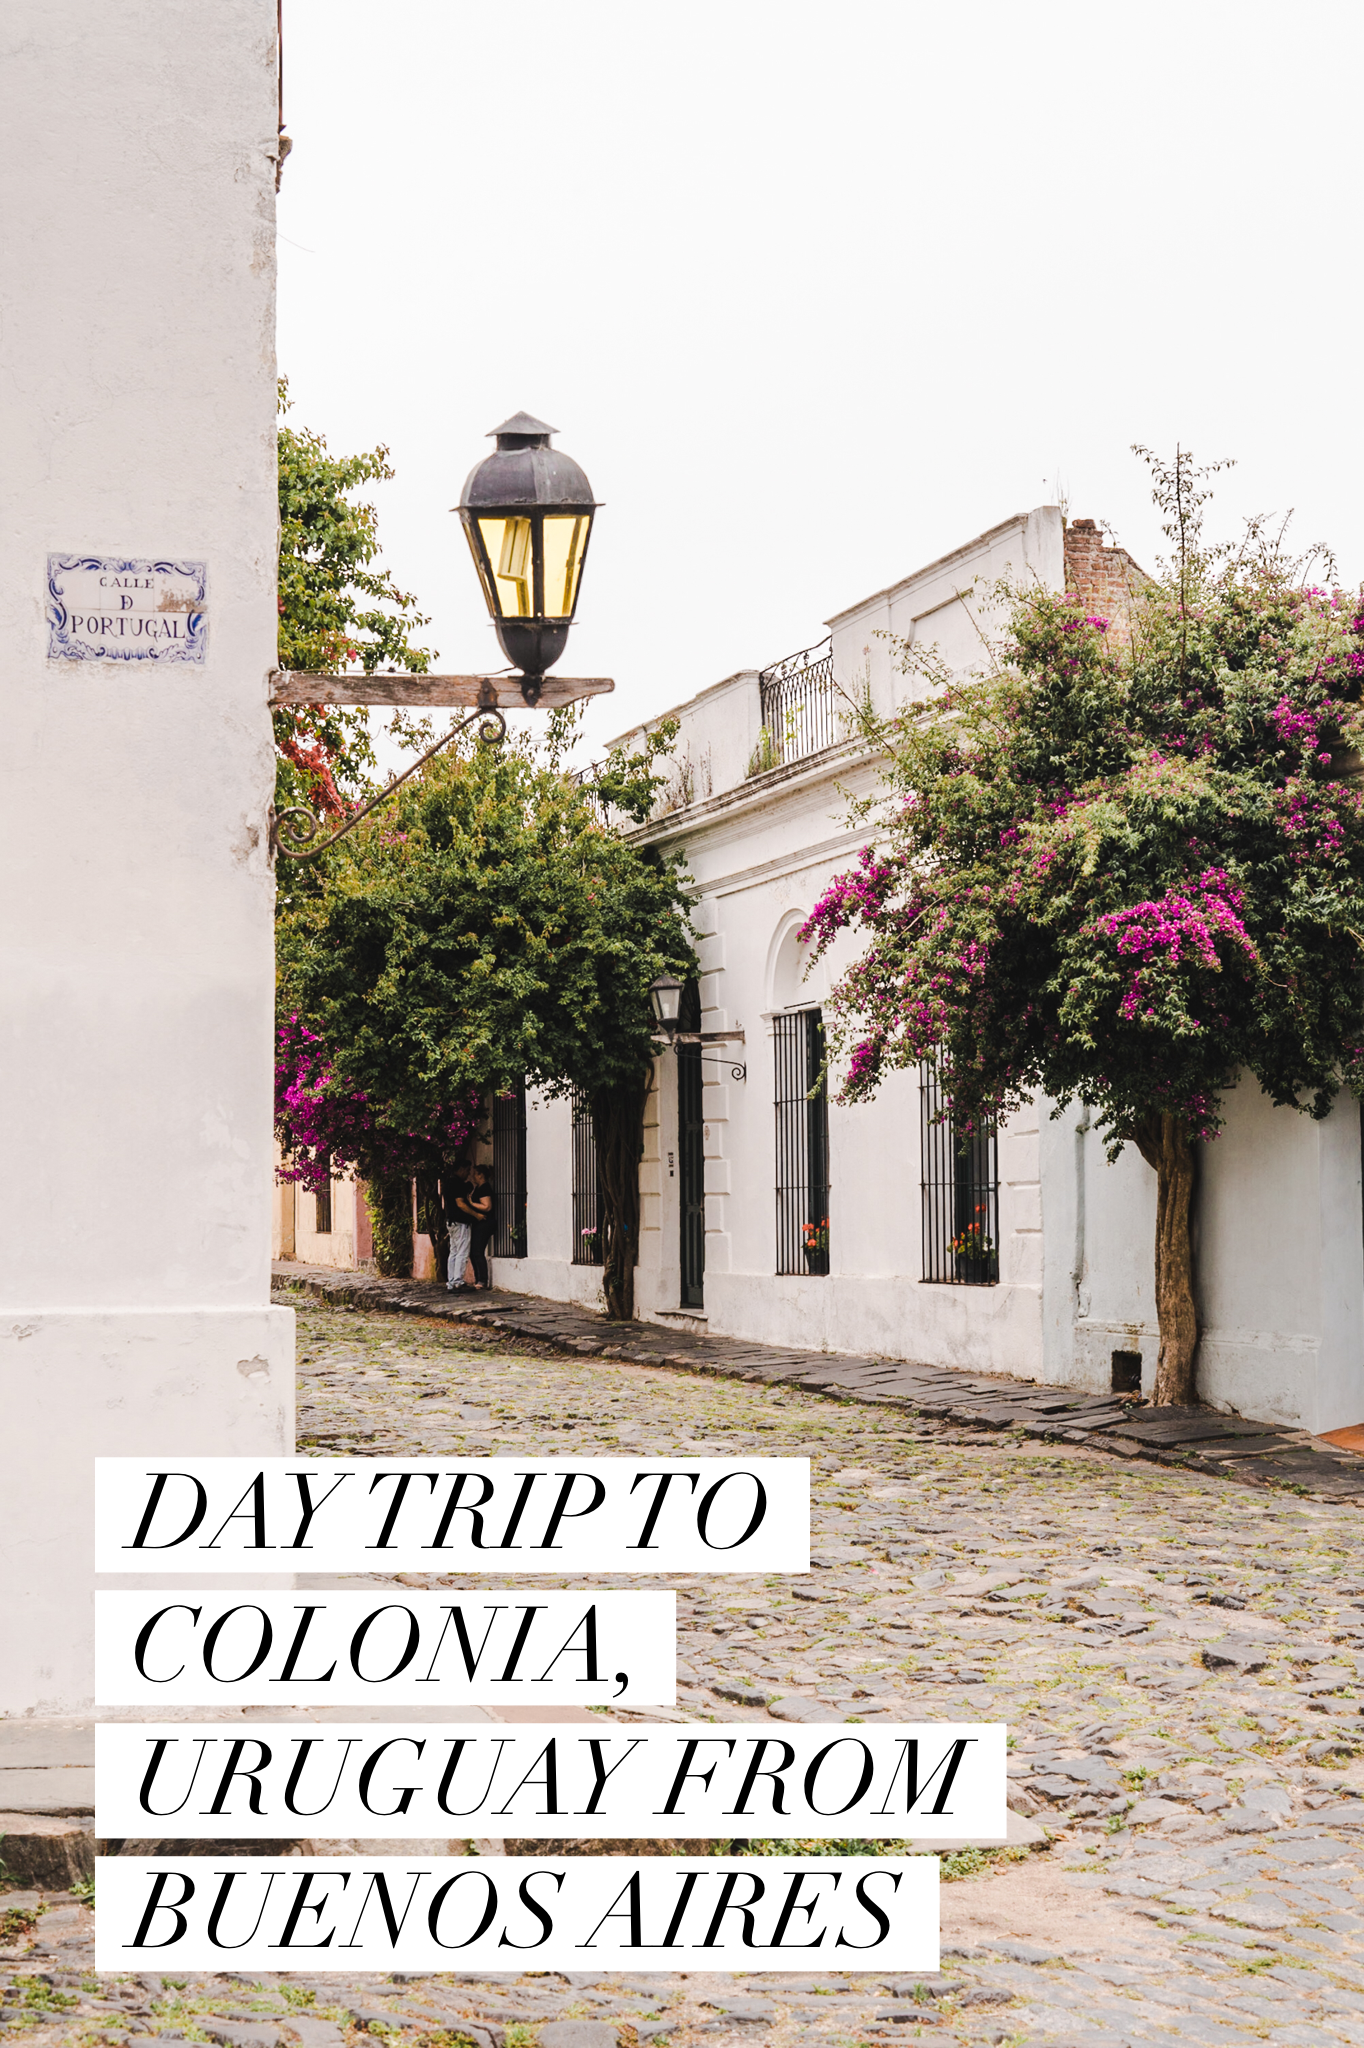 How To Do A Day Trip To Colonia Del Sacramento Uruguay From Buenos Aires South America Travel Photography South America Travel Day Trip